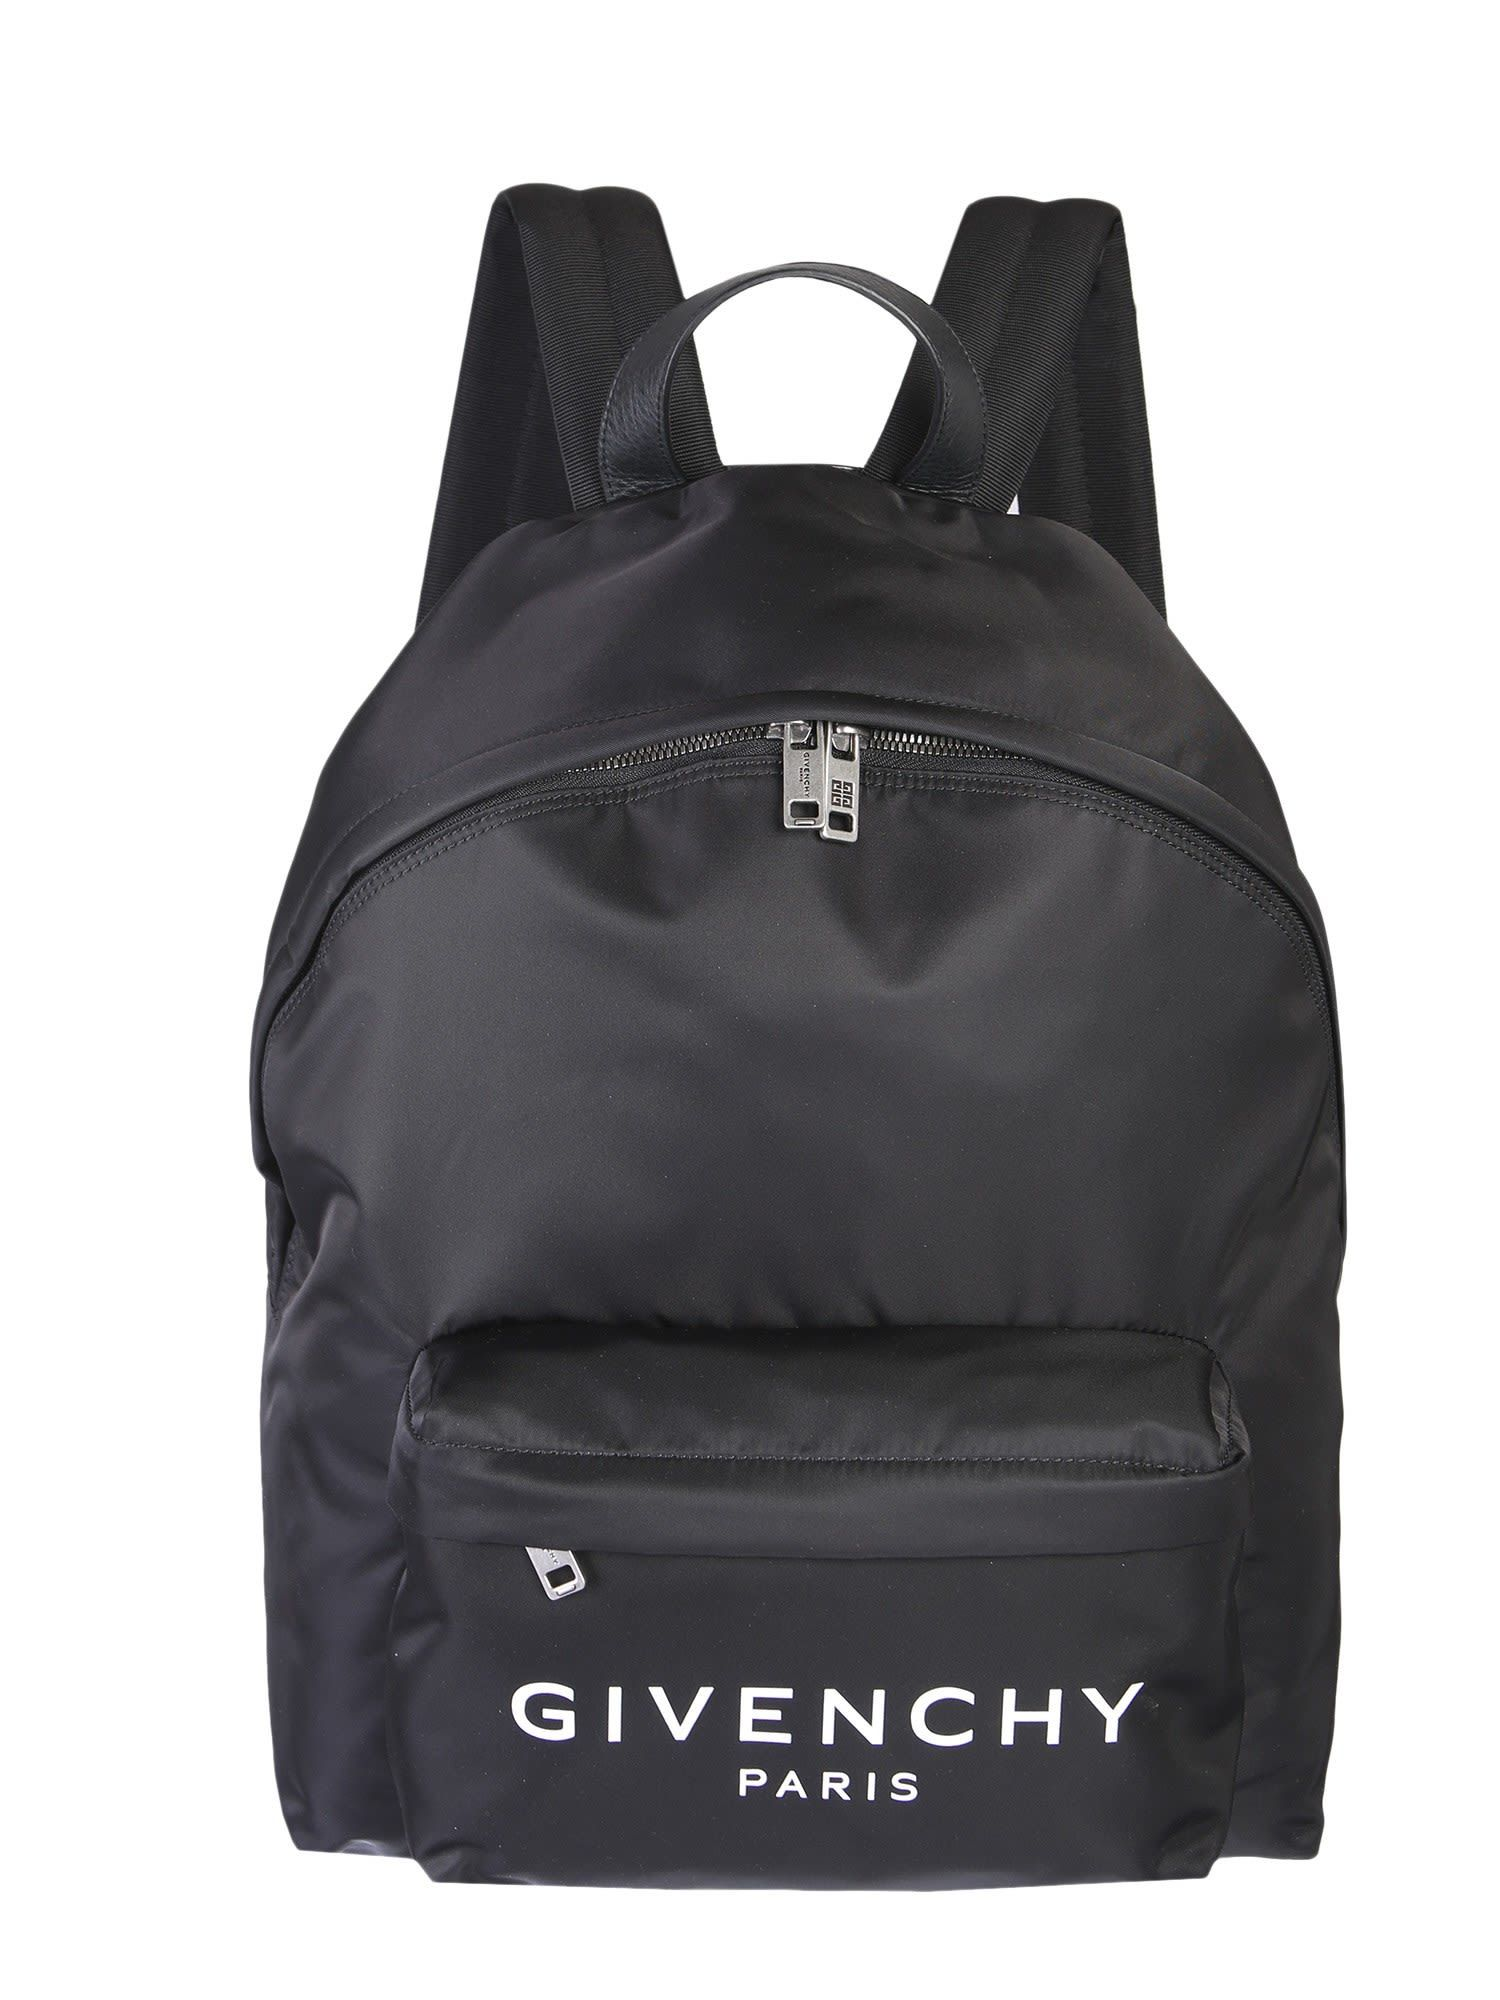 2acb5944fe GIVENCHY NYLON BACKPACK.  givenchy  bags  leather  nylon  backpacks ...